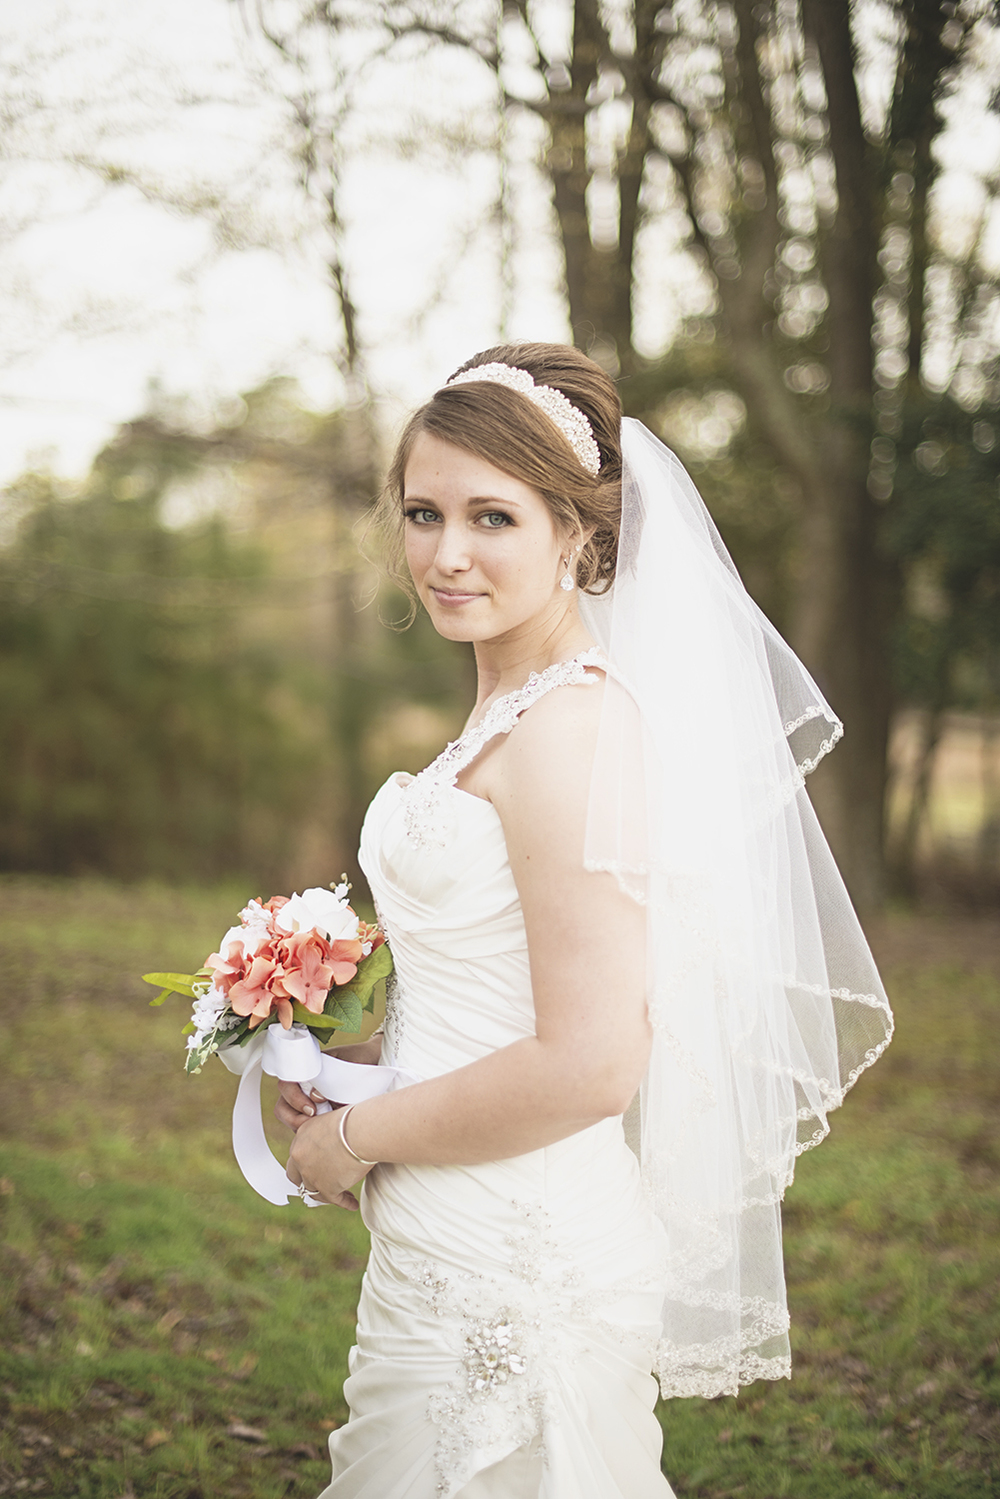 The Importance of Bridal Portraits